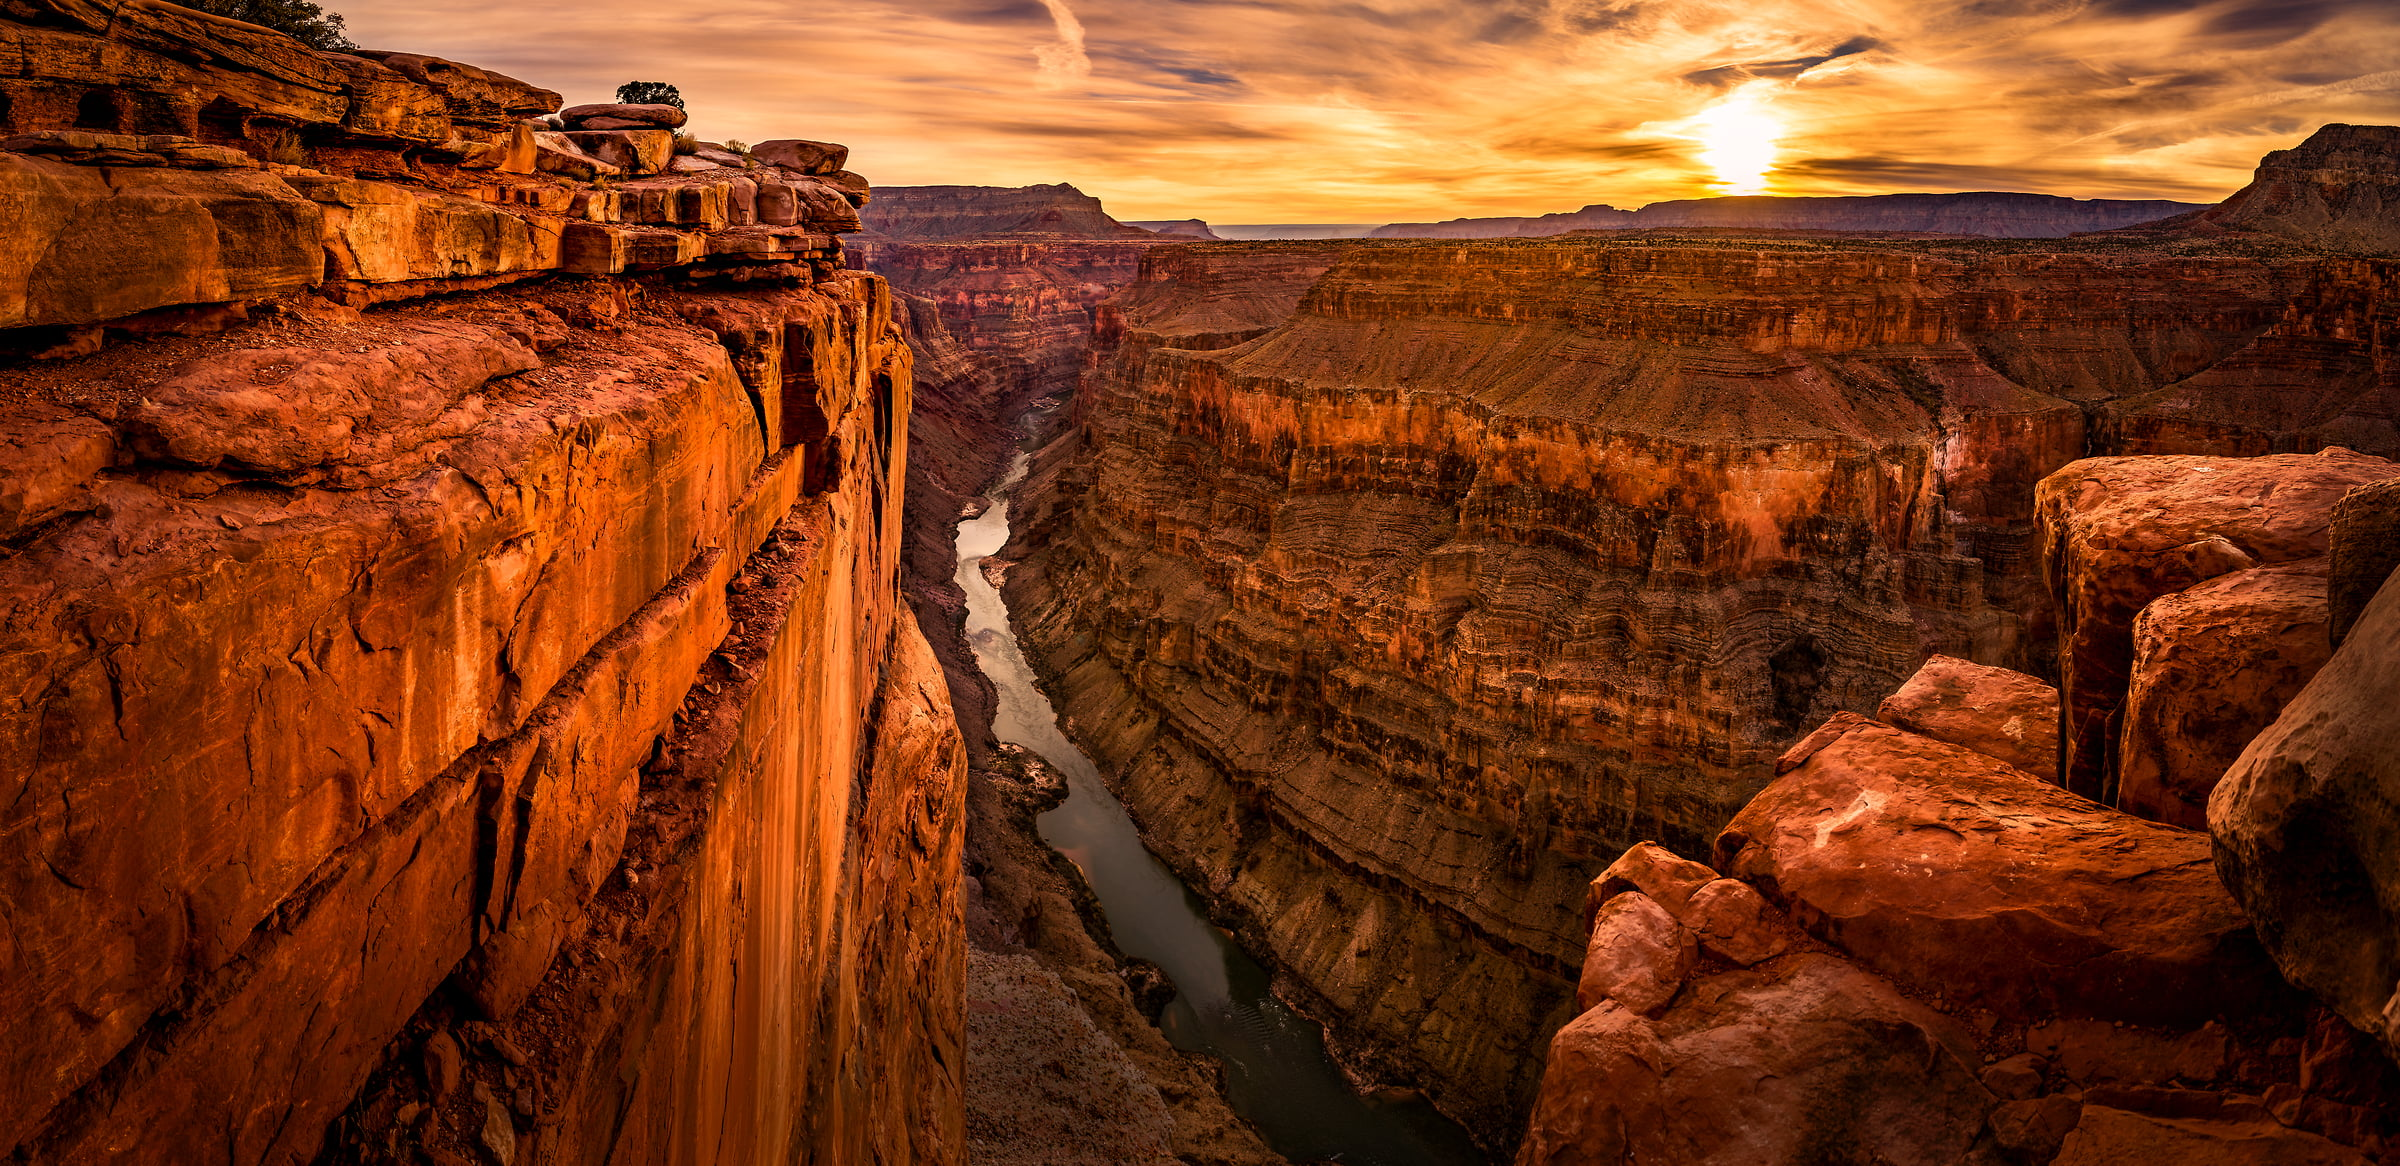 176 megapixels! A very high resolution, large-format VAST photo print of a canyon at sunset; landscape photograph created by Tim Shields in Grand Canyon National Park, Arizona, USA